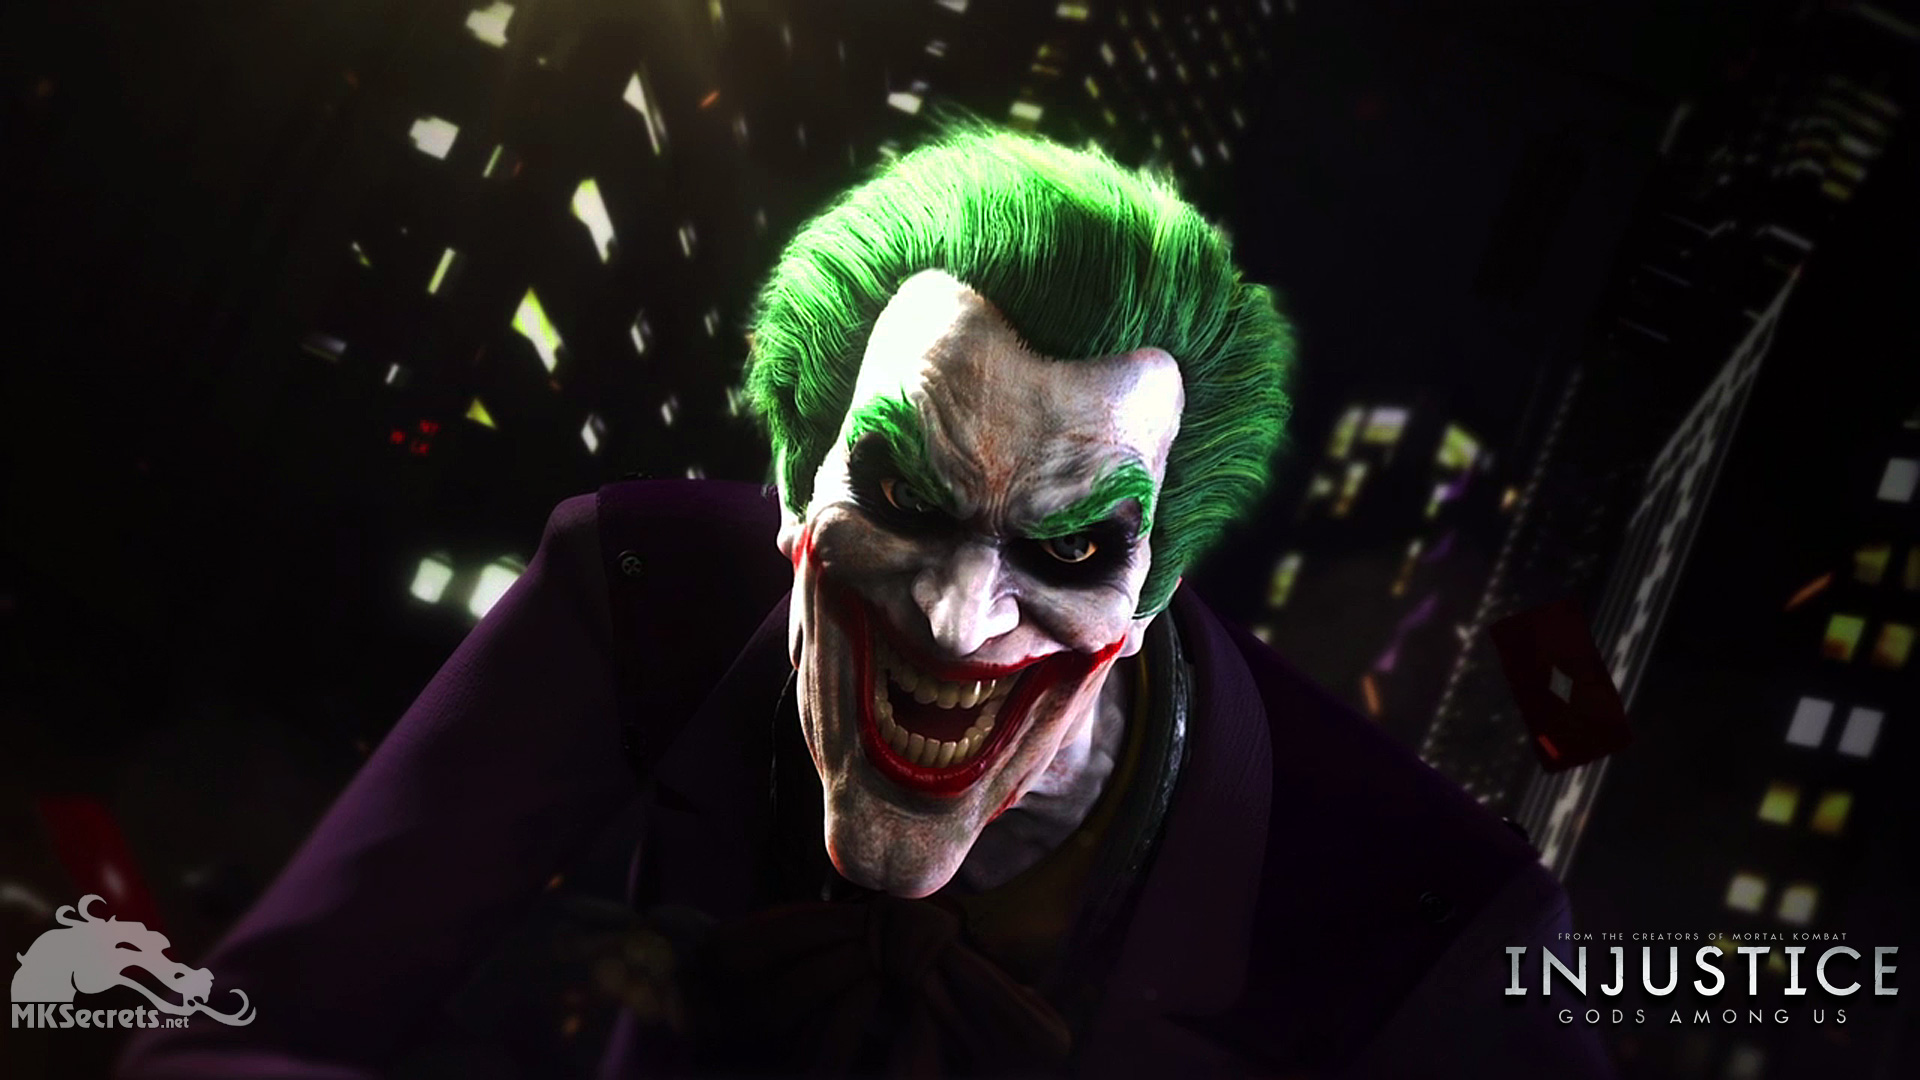 Injustice gods among us wallpapers mortal kombat secrets injustice gods among us the joker wallpaper voltagebd